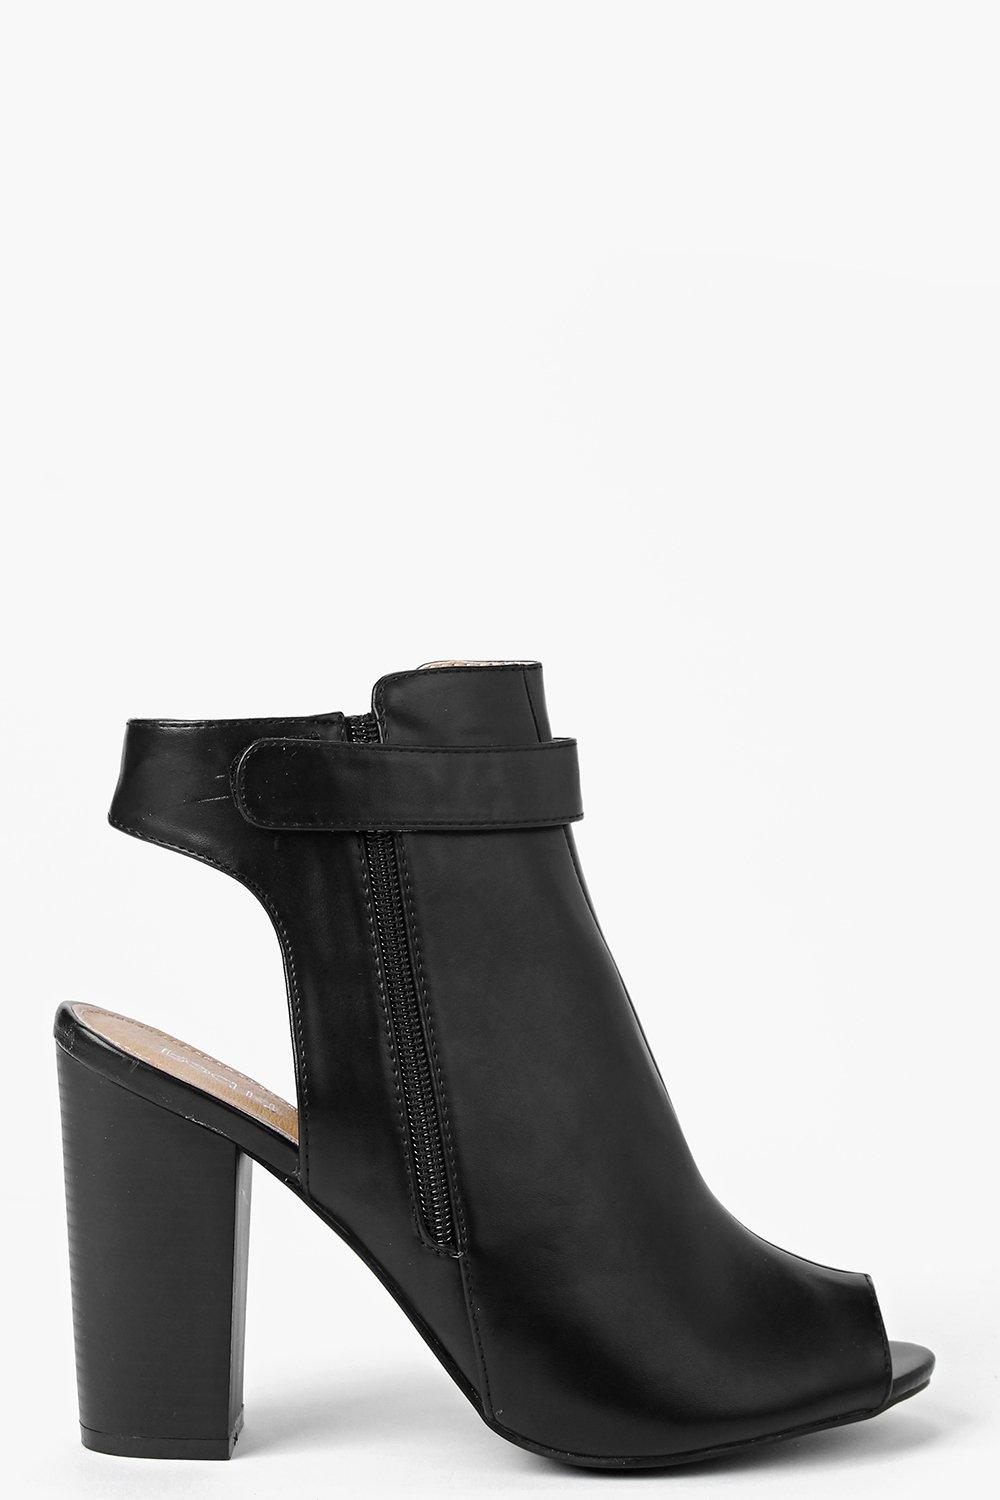 Rosie Peeptoe Open Back Heeled Shoe Boot